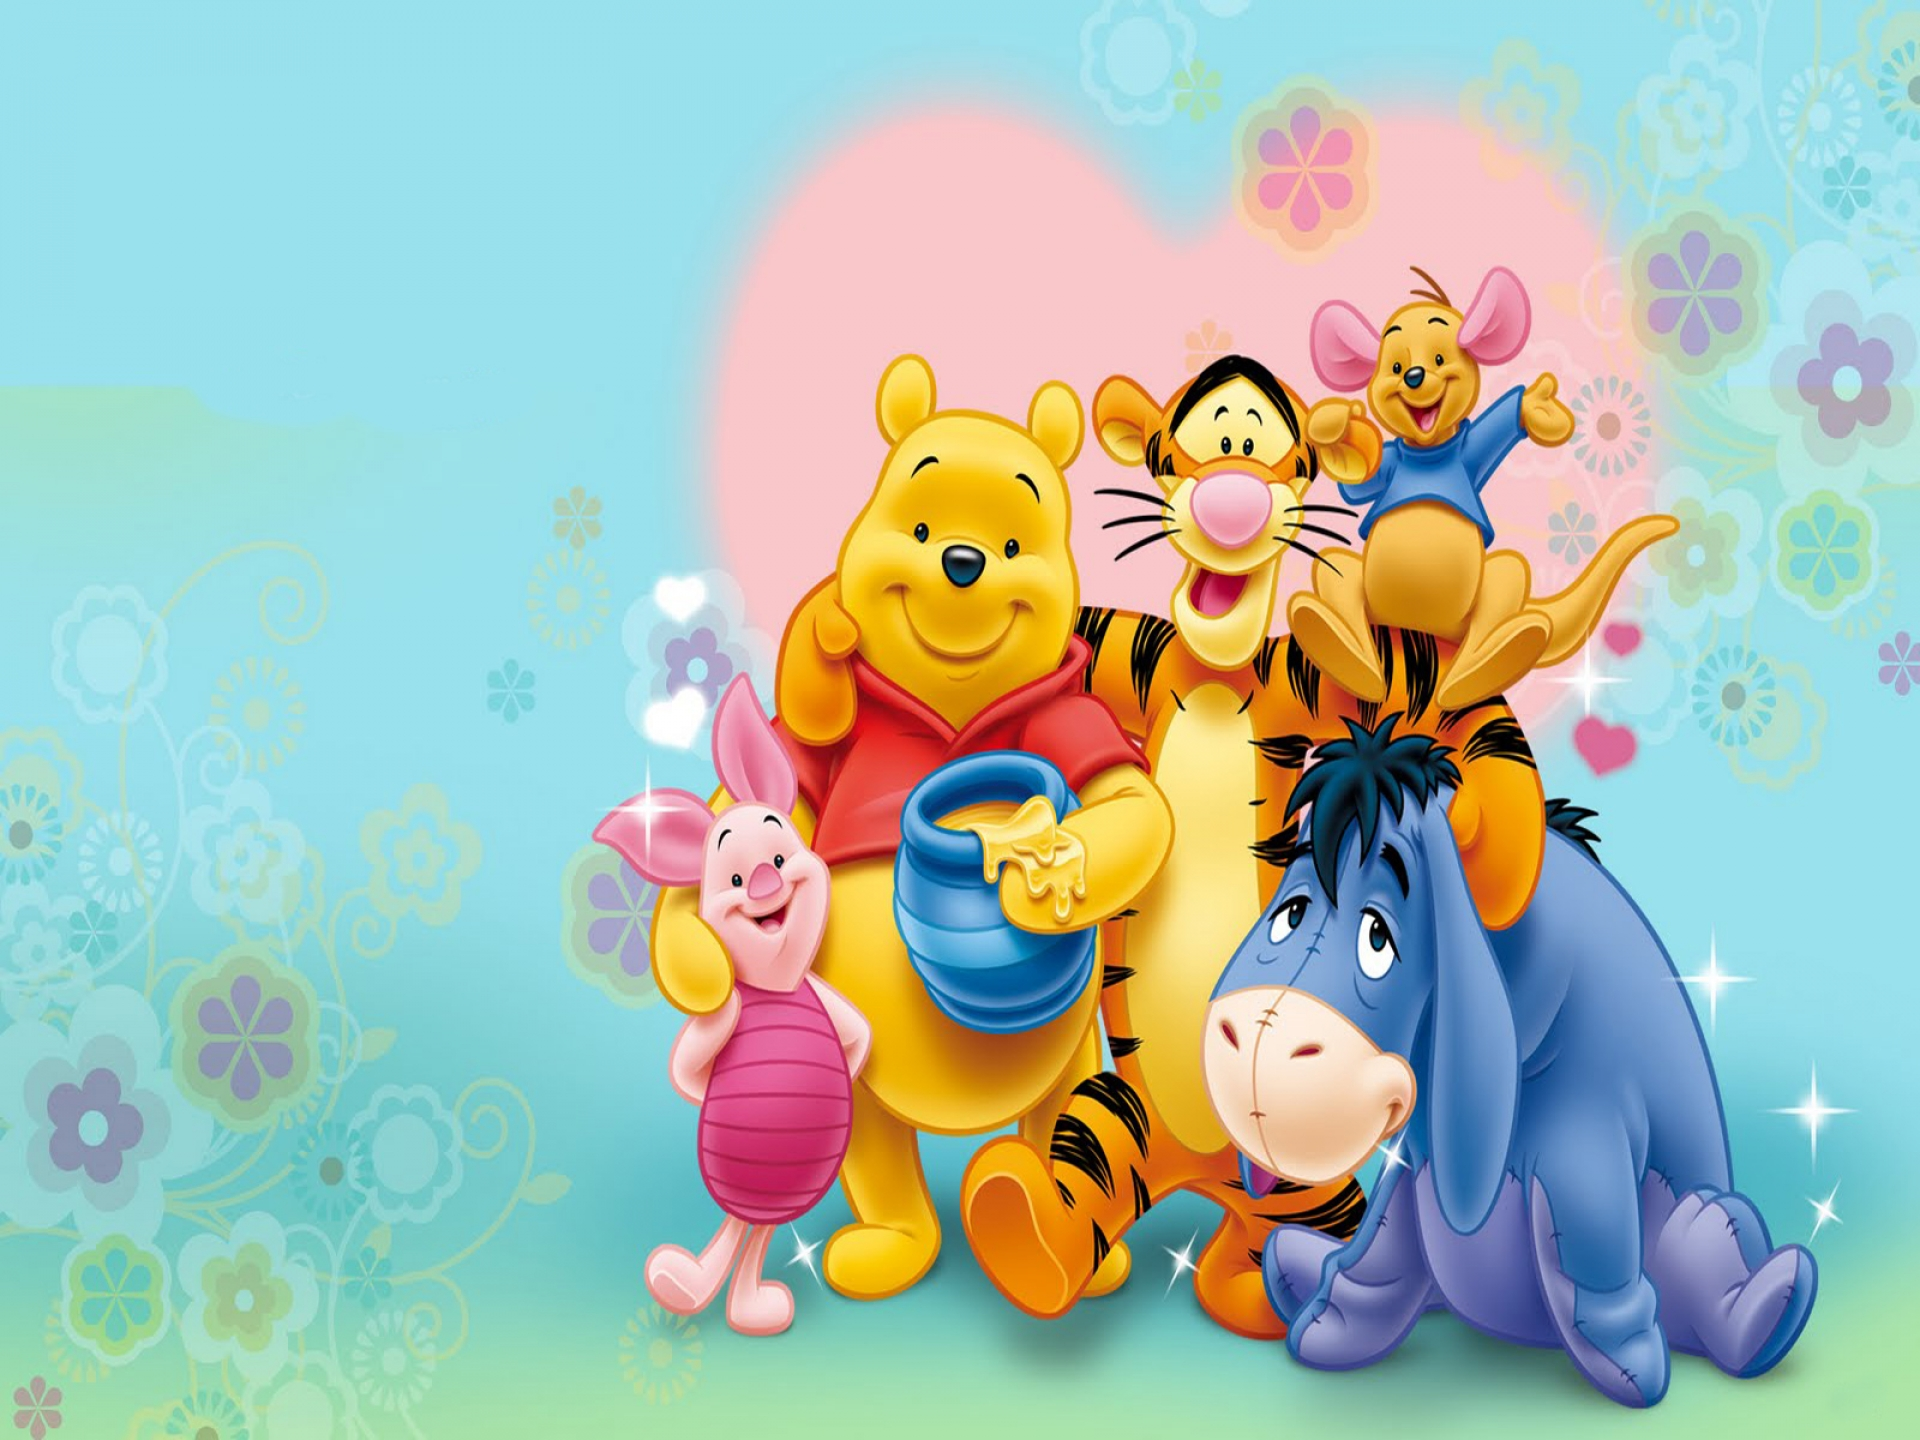 Glamorous Pin Free Winnie The Pooh Download for Kids Wallpapers On Pinterest